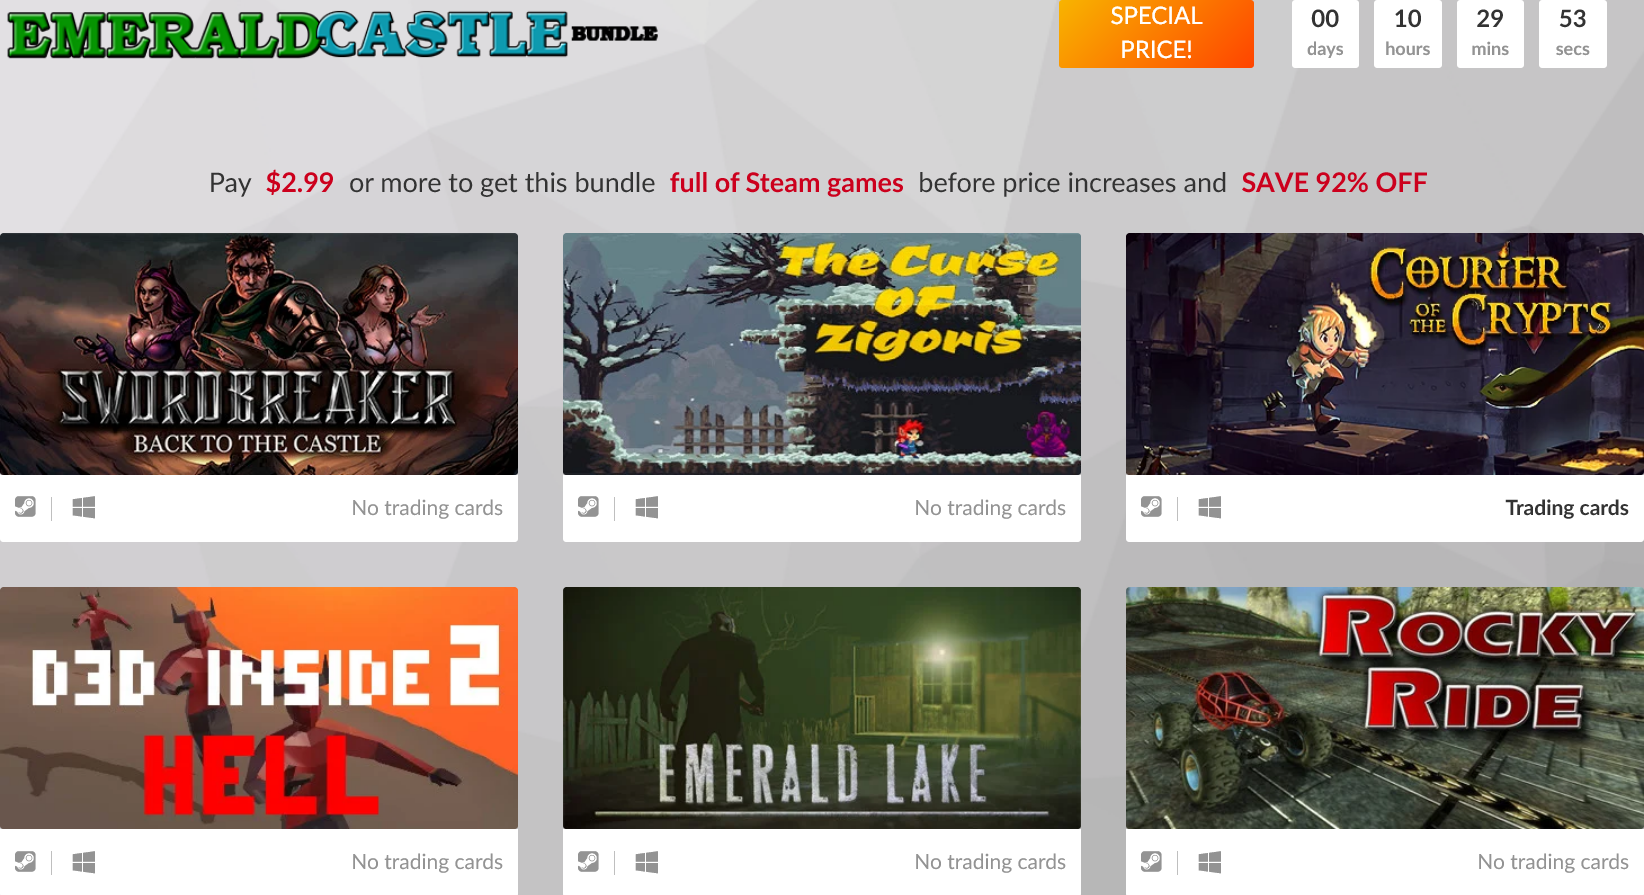 Screenshot_2020-09-10 Emerald Castle Bundle 6 Steam Games 94% OFF.png